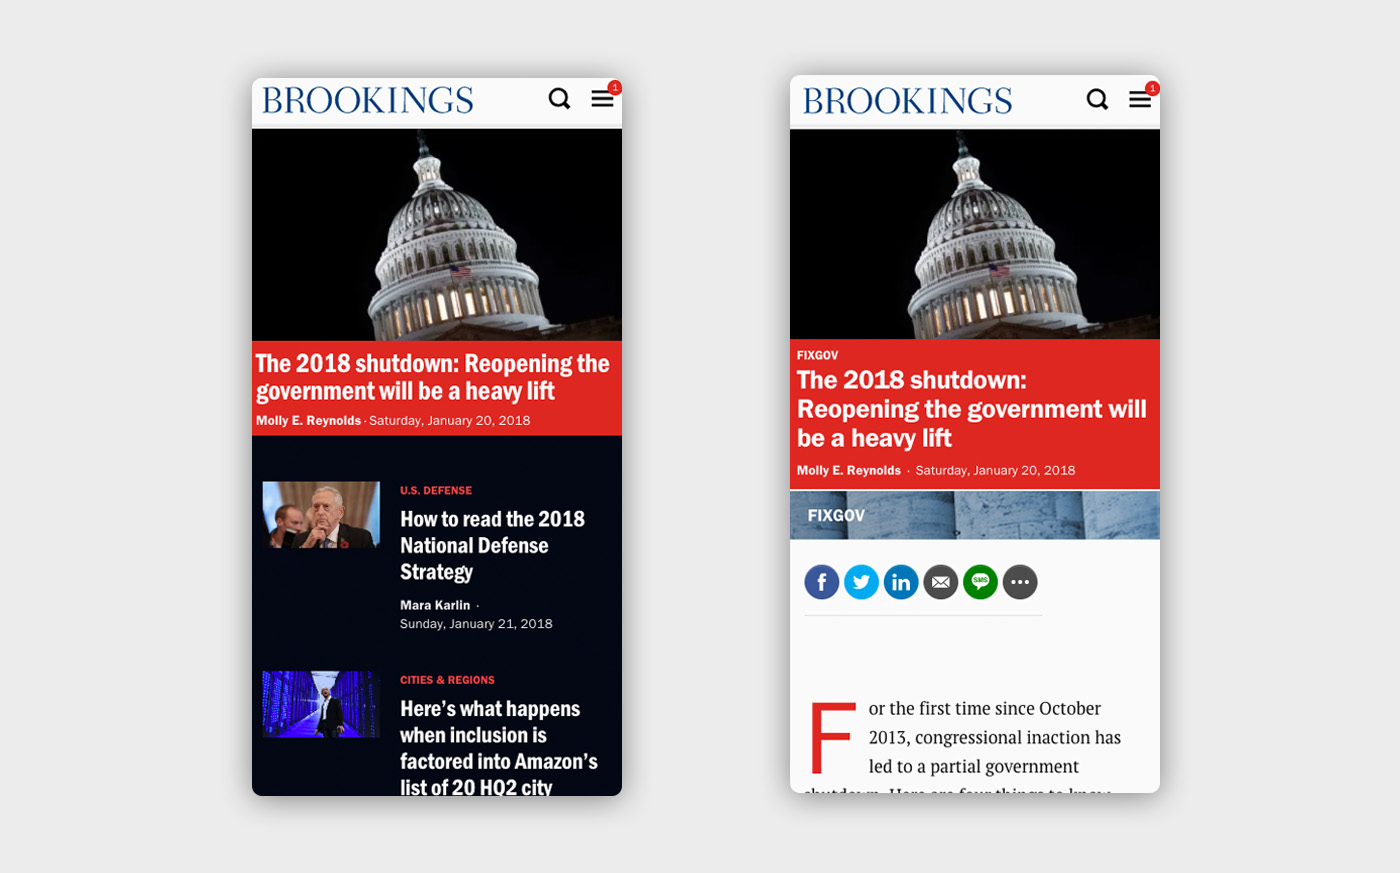 Mobile views of the Brookings site - on the left, the home page with images and headlines, and on the right a single article view also with an image and headline in red